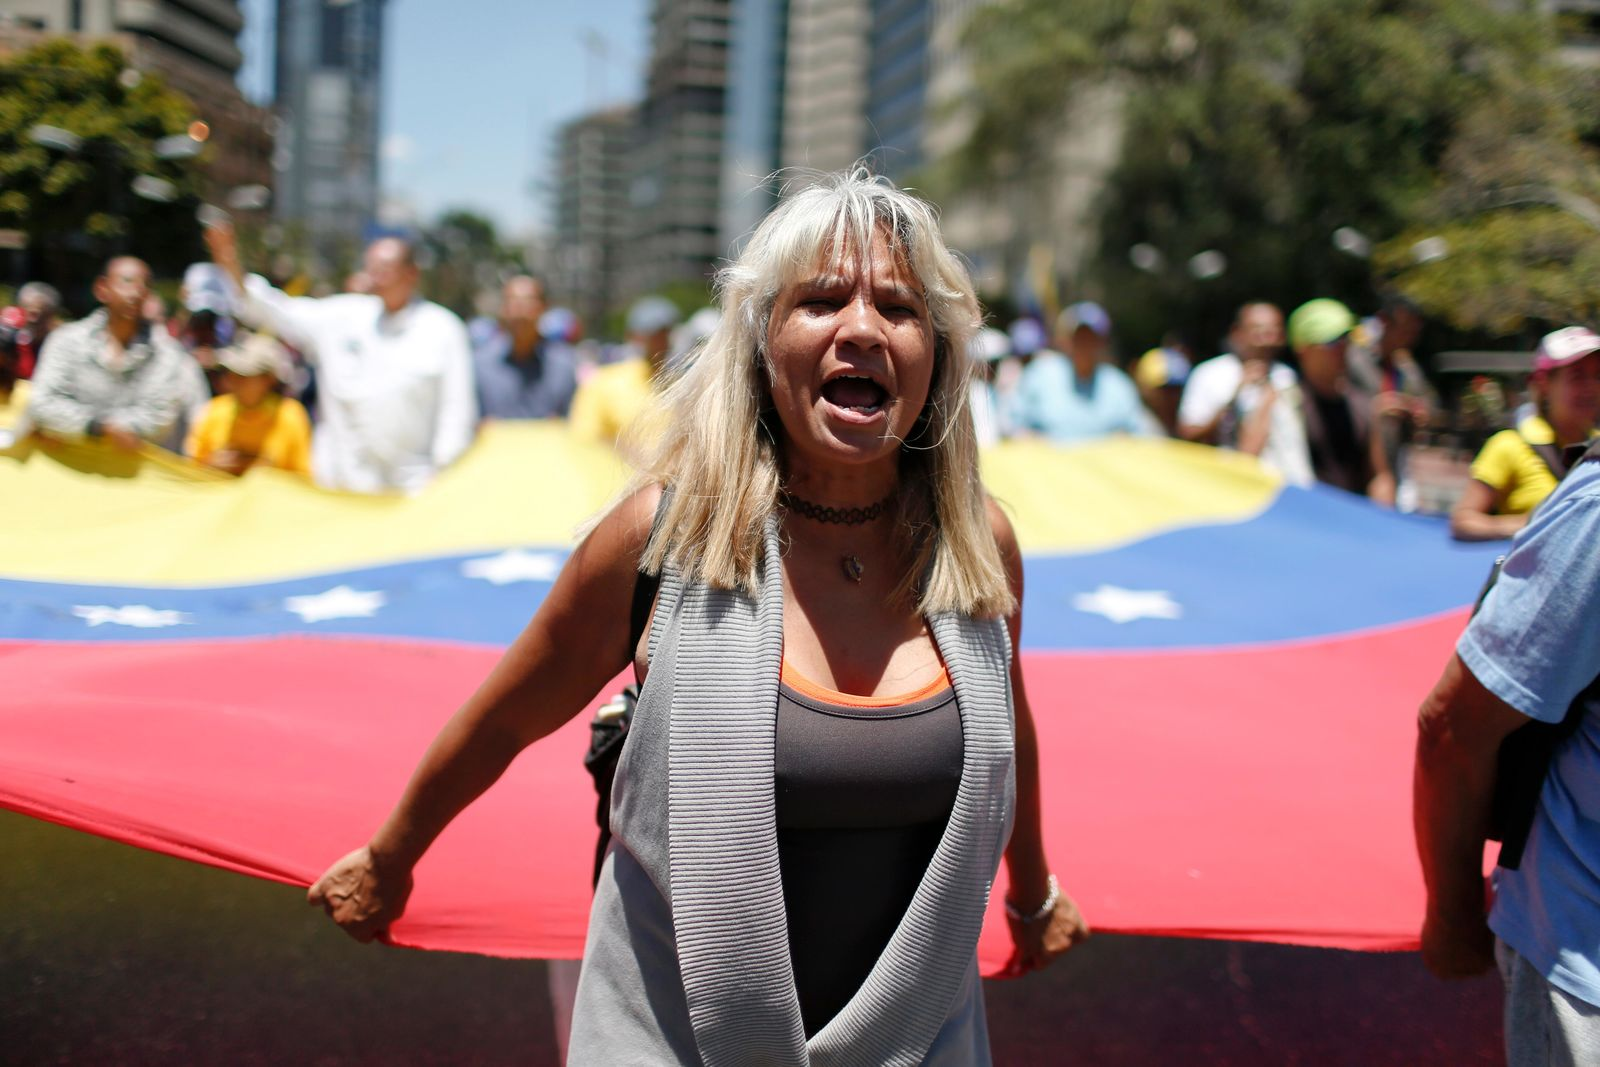 A supporter of opposition leader and self-proclaimed interim president Juan Guaido marches to protest outages that left most of the country scrambling for days in the dark in Caracas, Venezuela, Saturday, April 6, 2019. (AP Photo/Natacha Pisarenko)